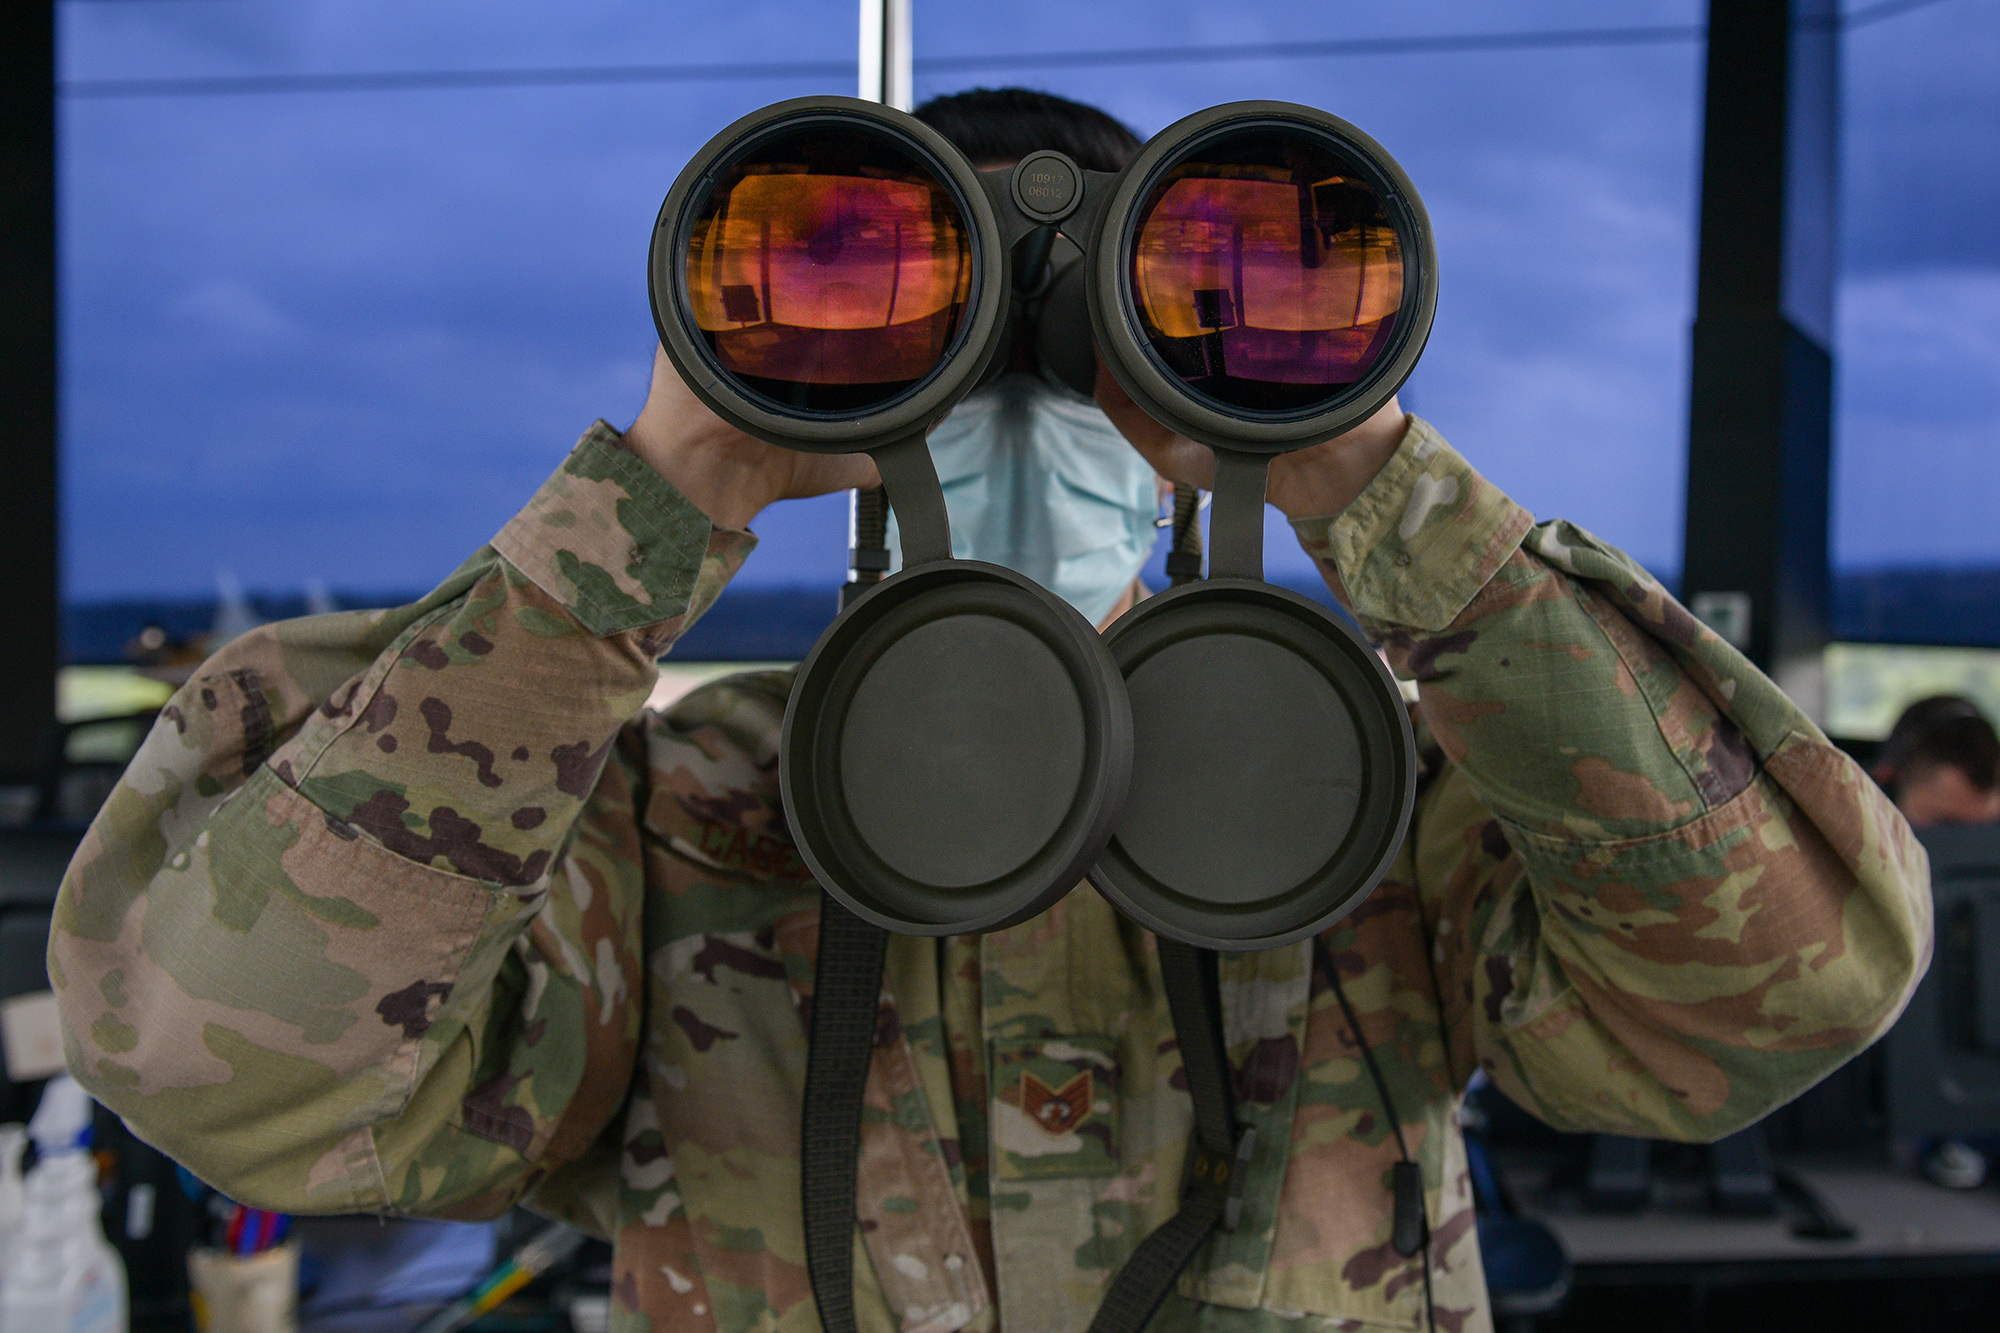 Air Force Staff Sgt. Daniel Cabezas scans the horizon for landing lights and obstructions on the flightline at Aviano Air Base, Italy, May 7, 2021. (Airman 1st Class Brooke Moeder/Air Force)